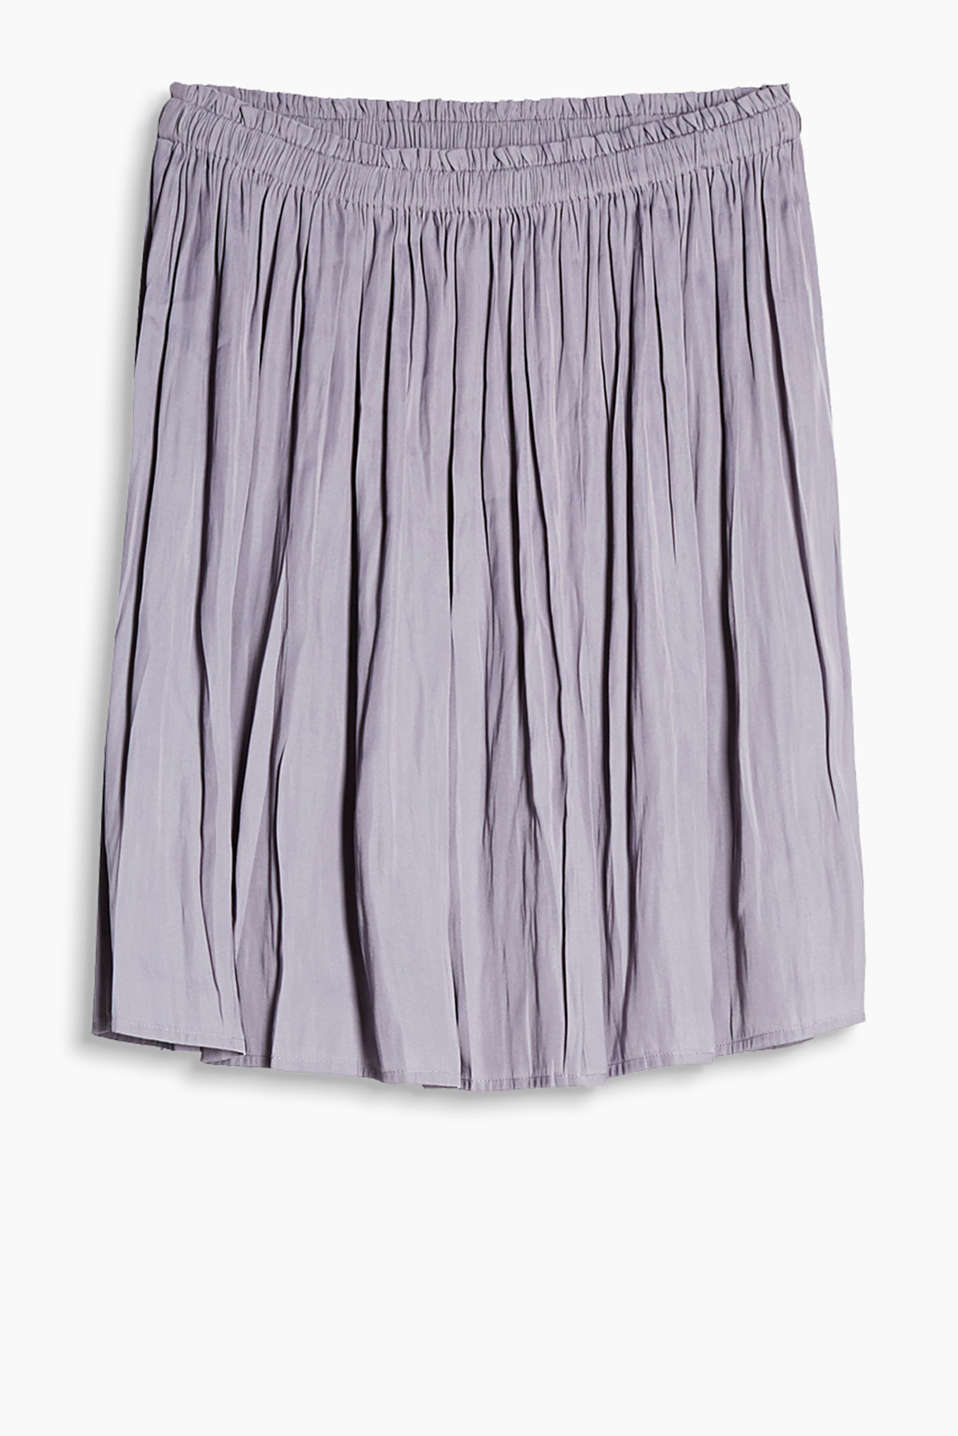 This knee-length pleated skirt in flowing fabric is the perfect 24/7 essential